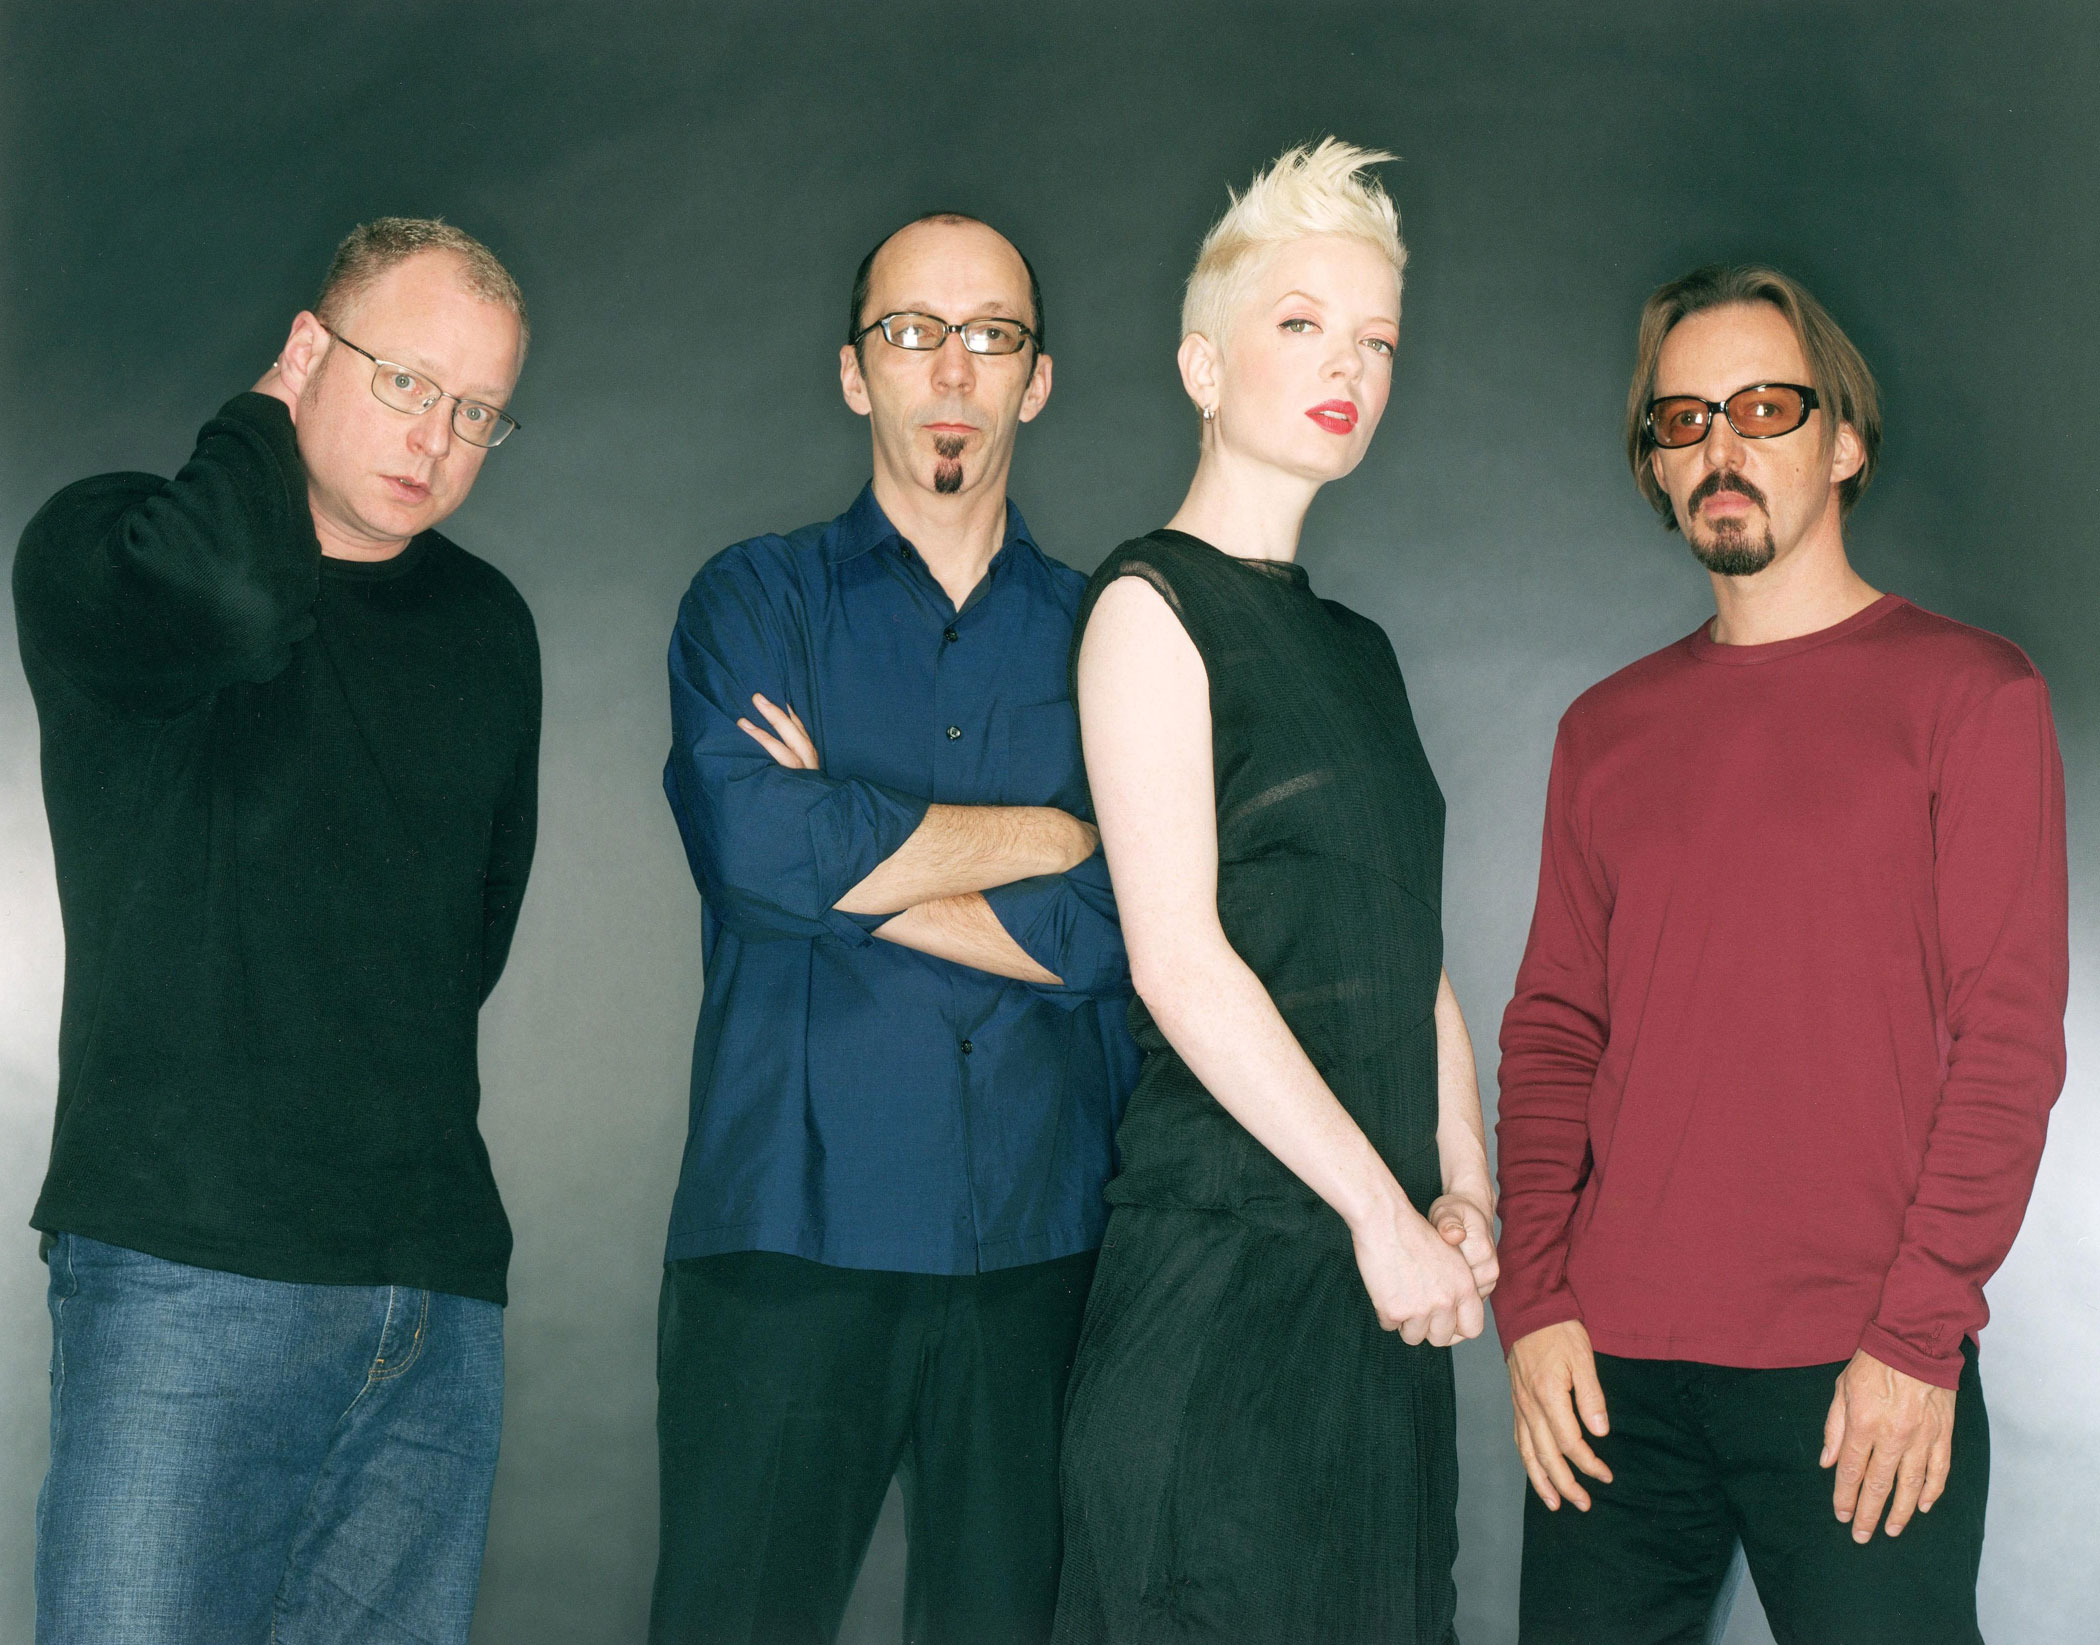 <b>Garbage</b> sang the theme song for <i>The World is Not Enough</i>.